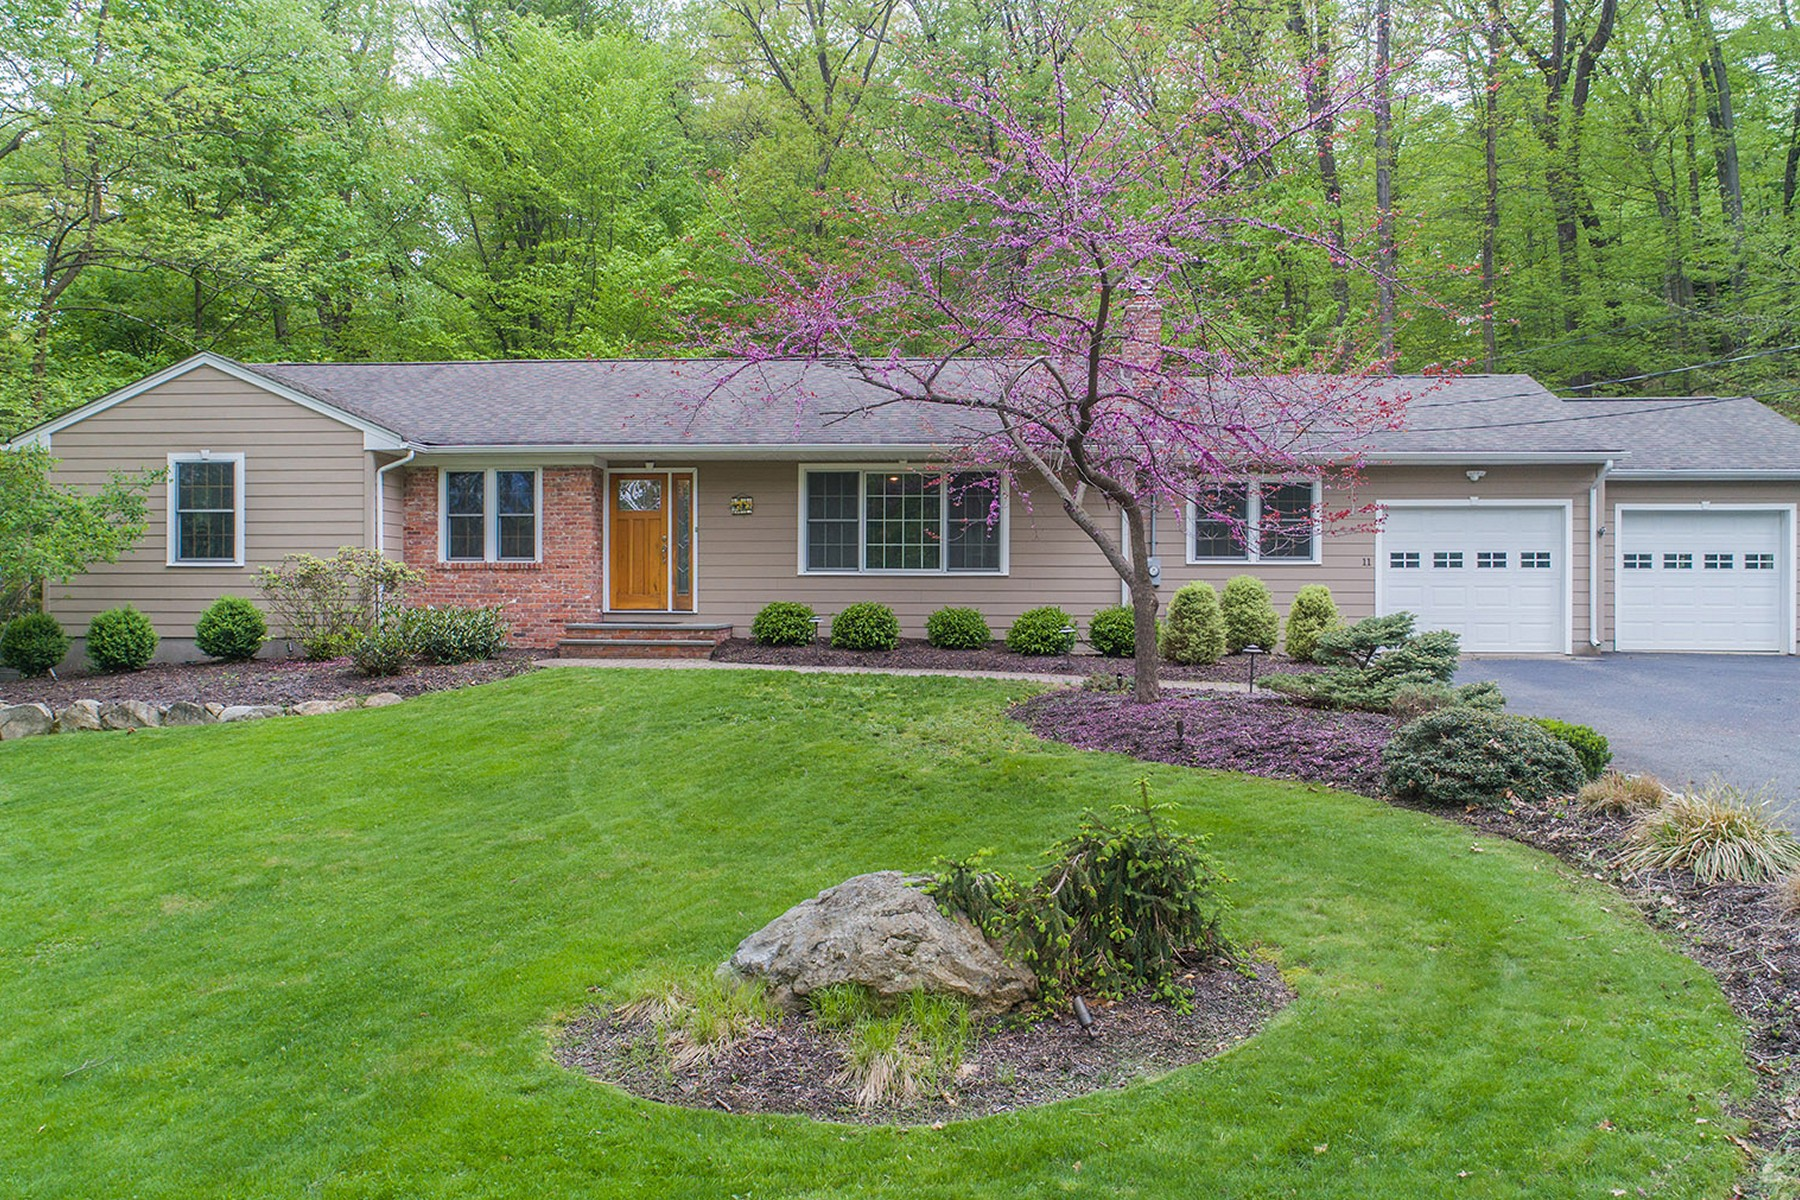 Single Family Homes for Sale at Form Meets Function! 11 Glenwood Drive Montville, New Jersey 07045 United States